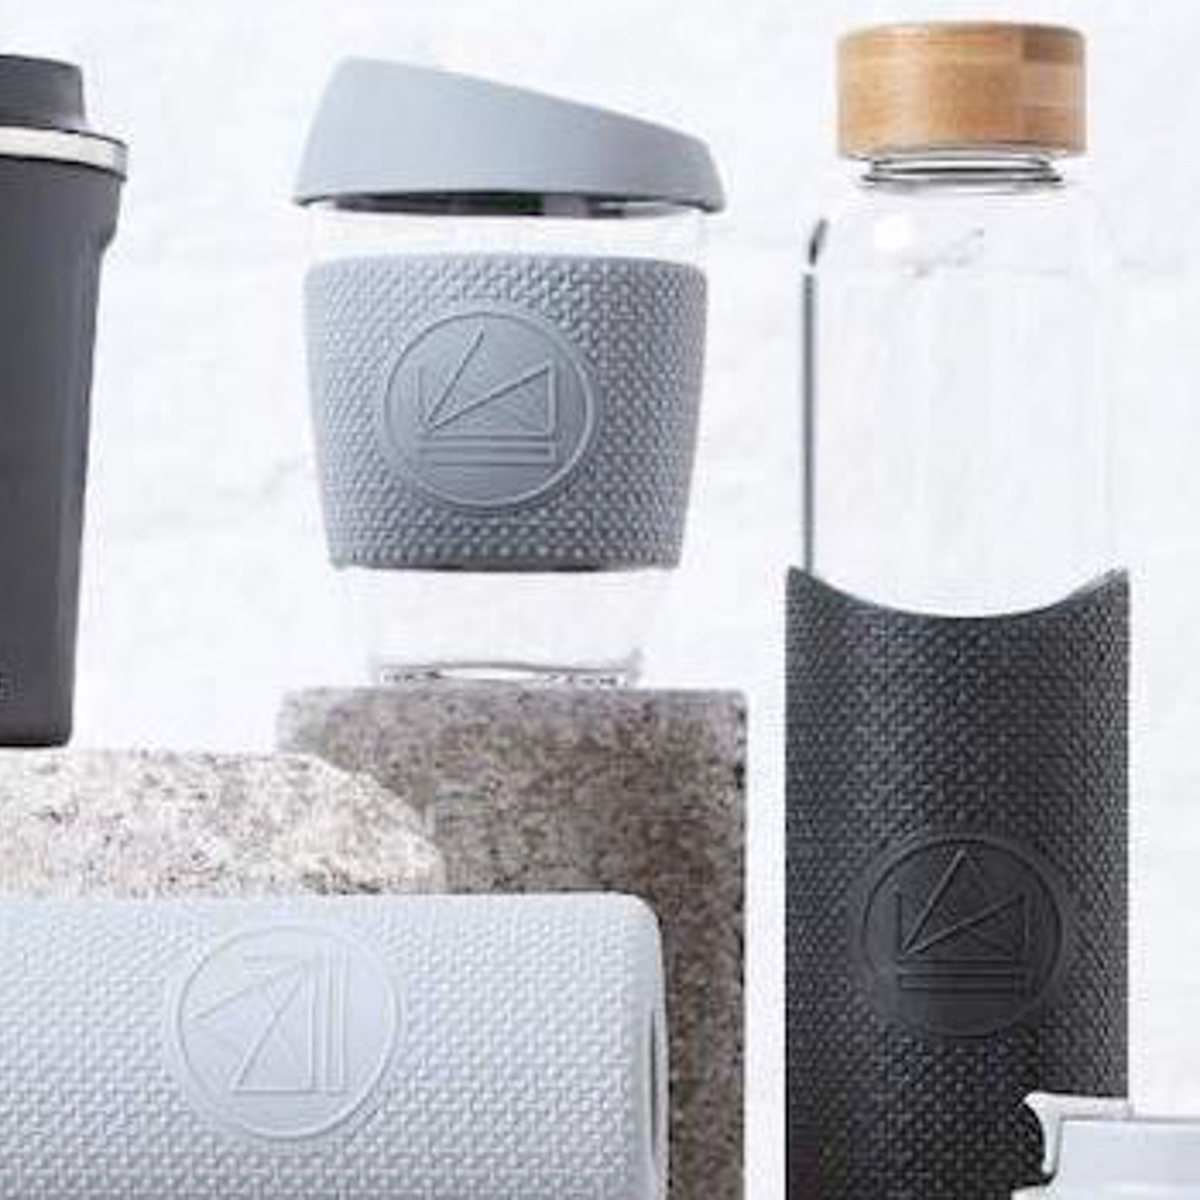 Reusable bottles from Zero Zen